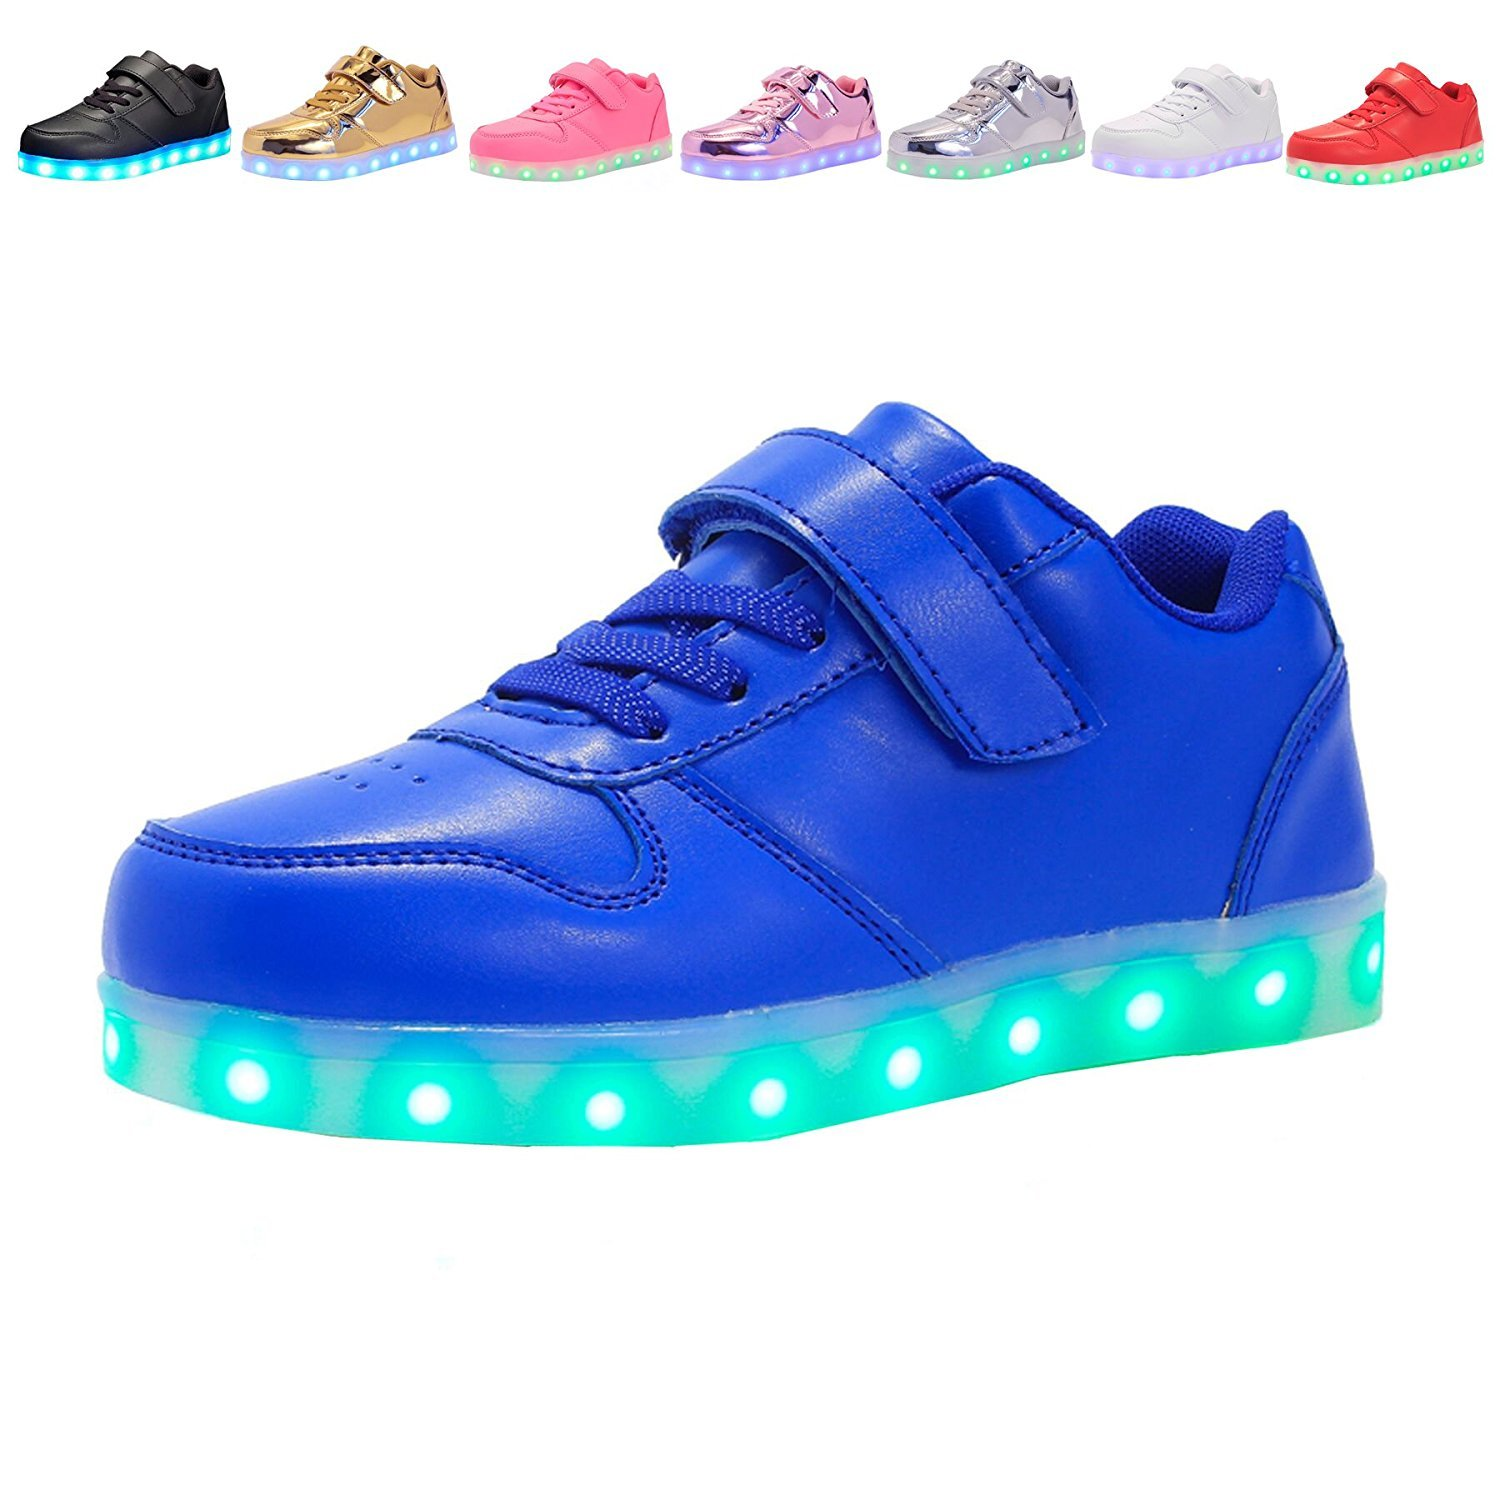 Kids USB Charging Light Up LED Shoes Flashing Sneakers For Boys Girls Walking Shoes Luminous (Blue 13 M US Little Kid)